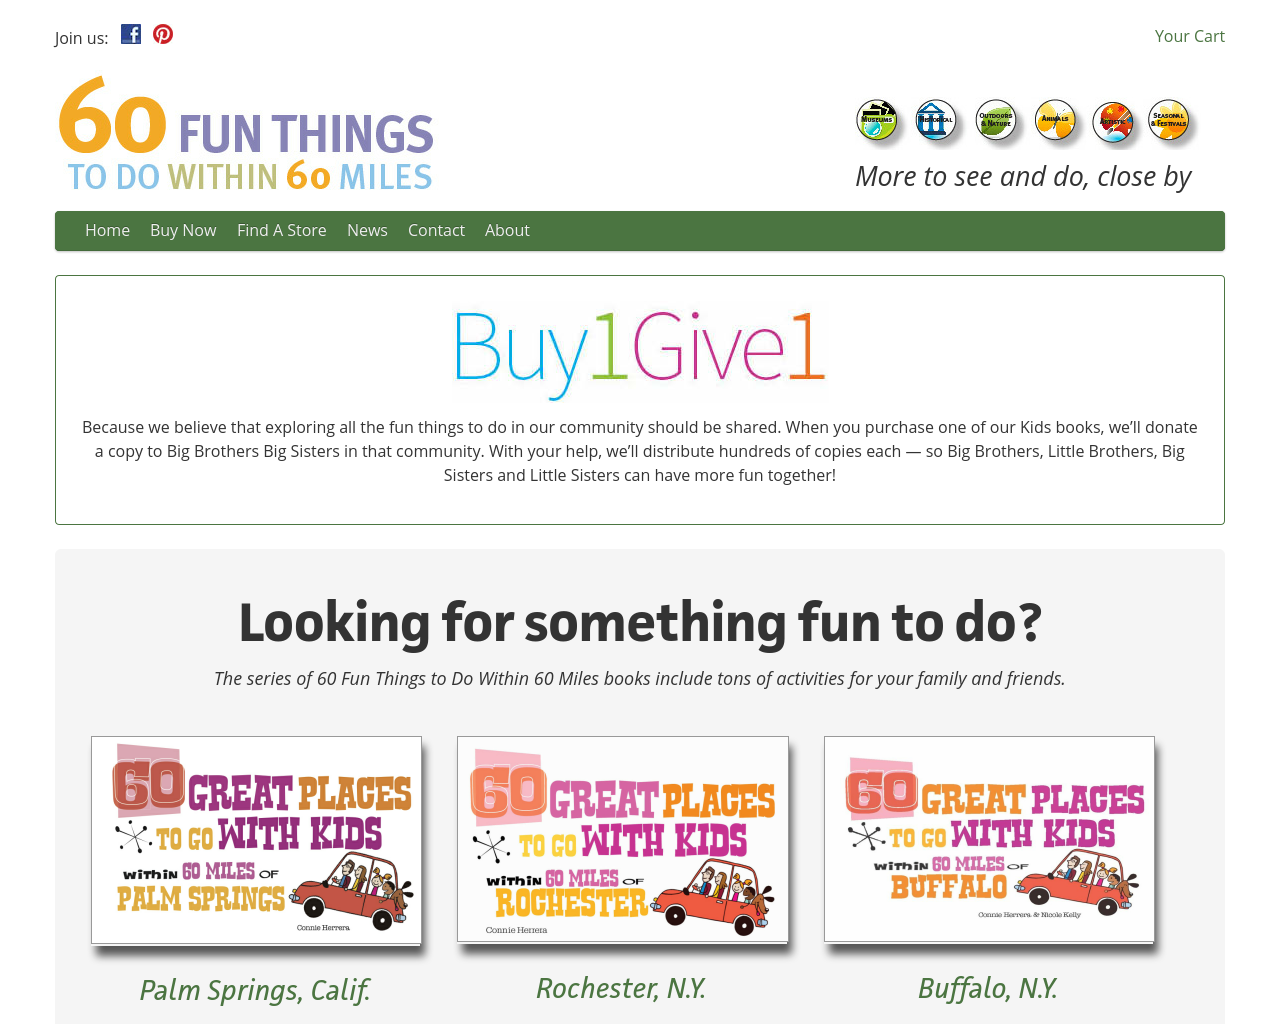 60-FUN-THINGS-TO-DO-WITHIN-60-MILES-Advertising-Reviews-Pricing